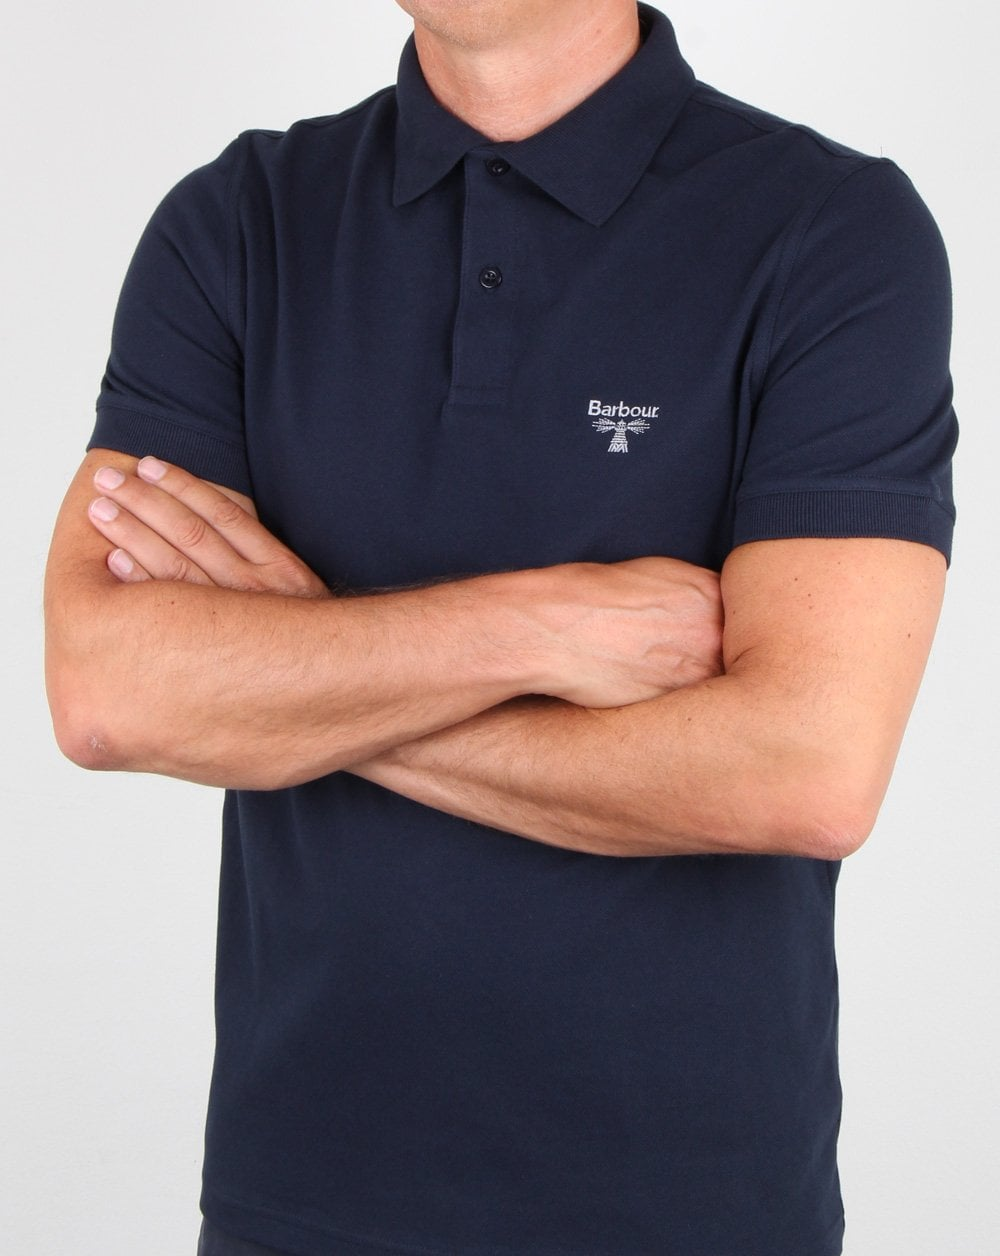 Barbour Beacon Polo Shirt